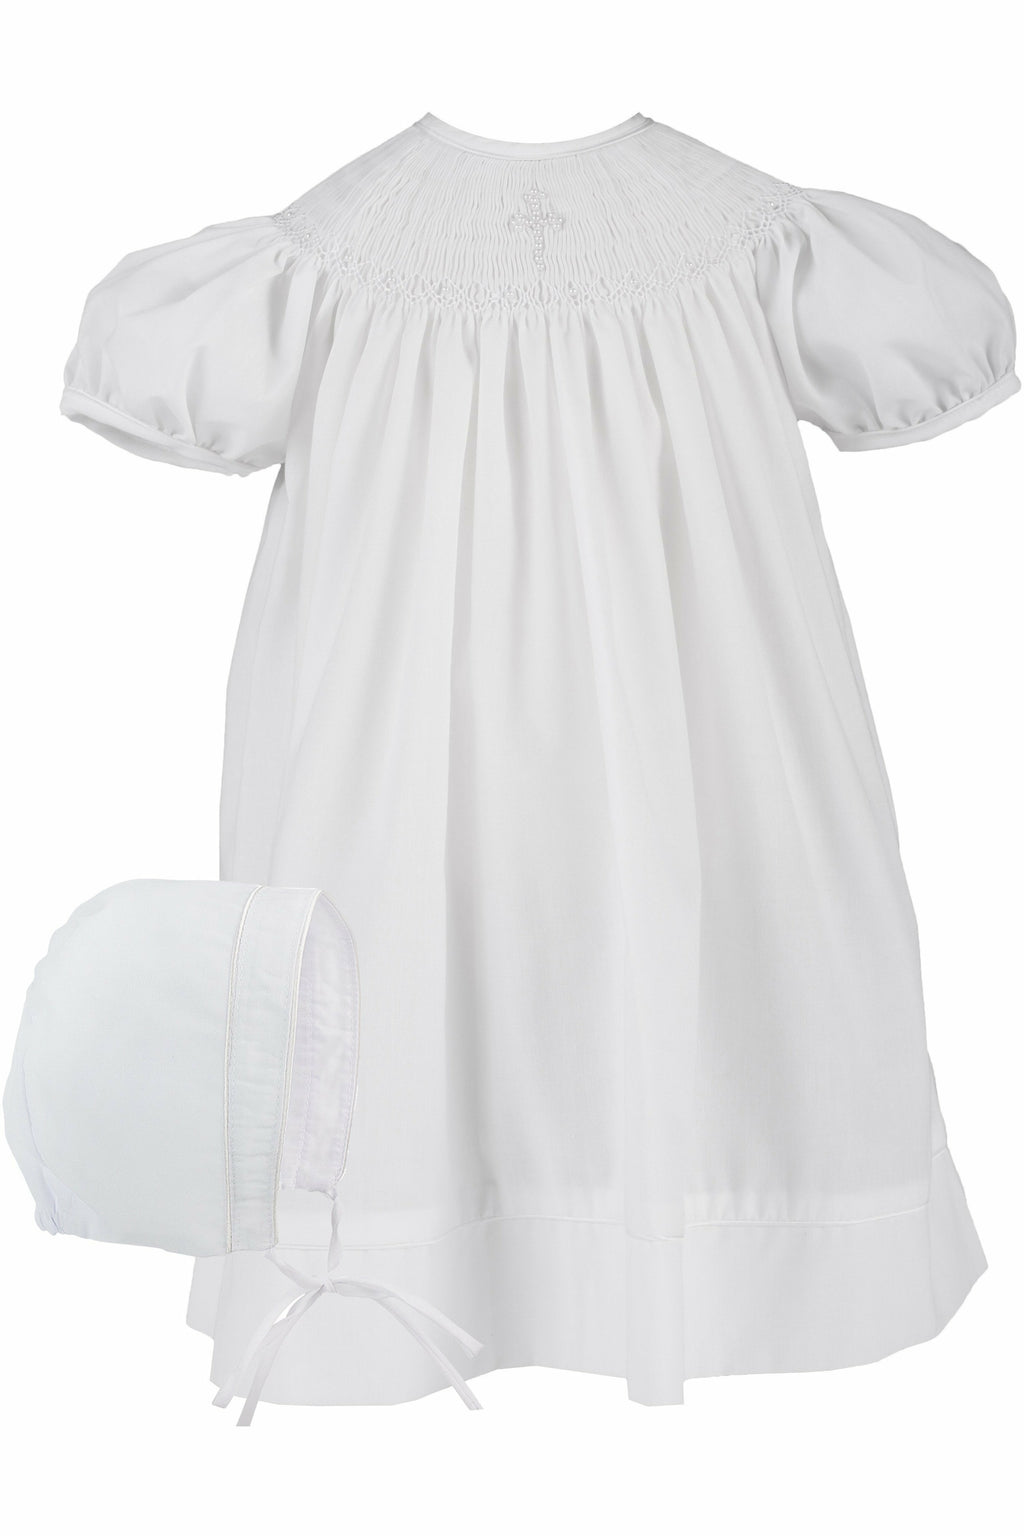 Baby Girls Hand Smocked Christening /Baptism Pearl Cross Bishop Dress with Bonnet - White